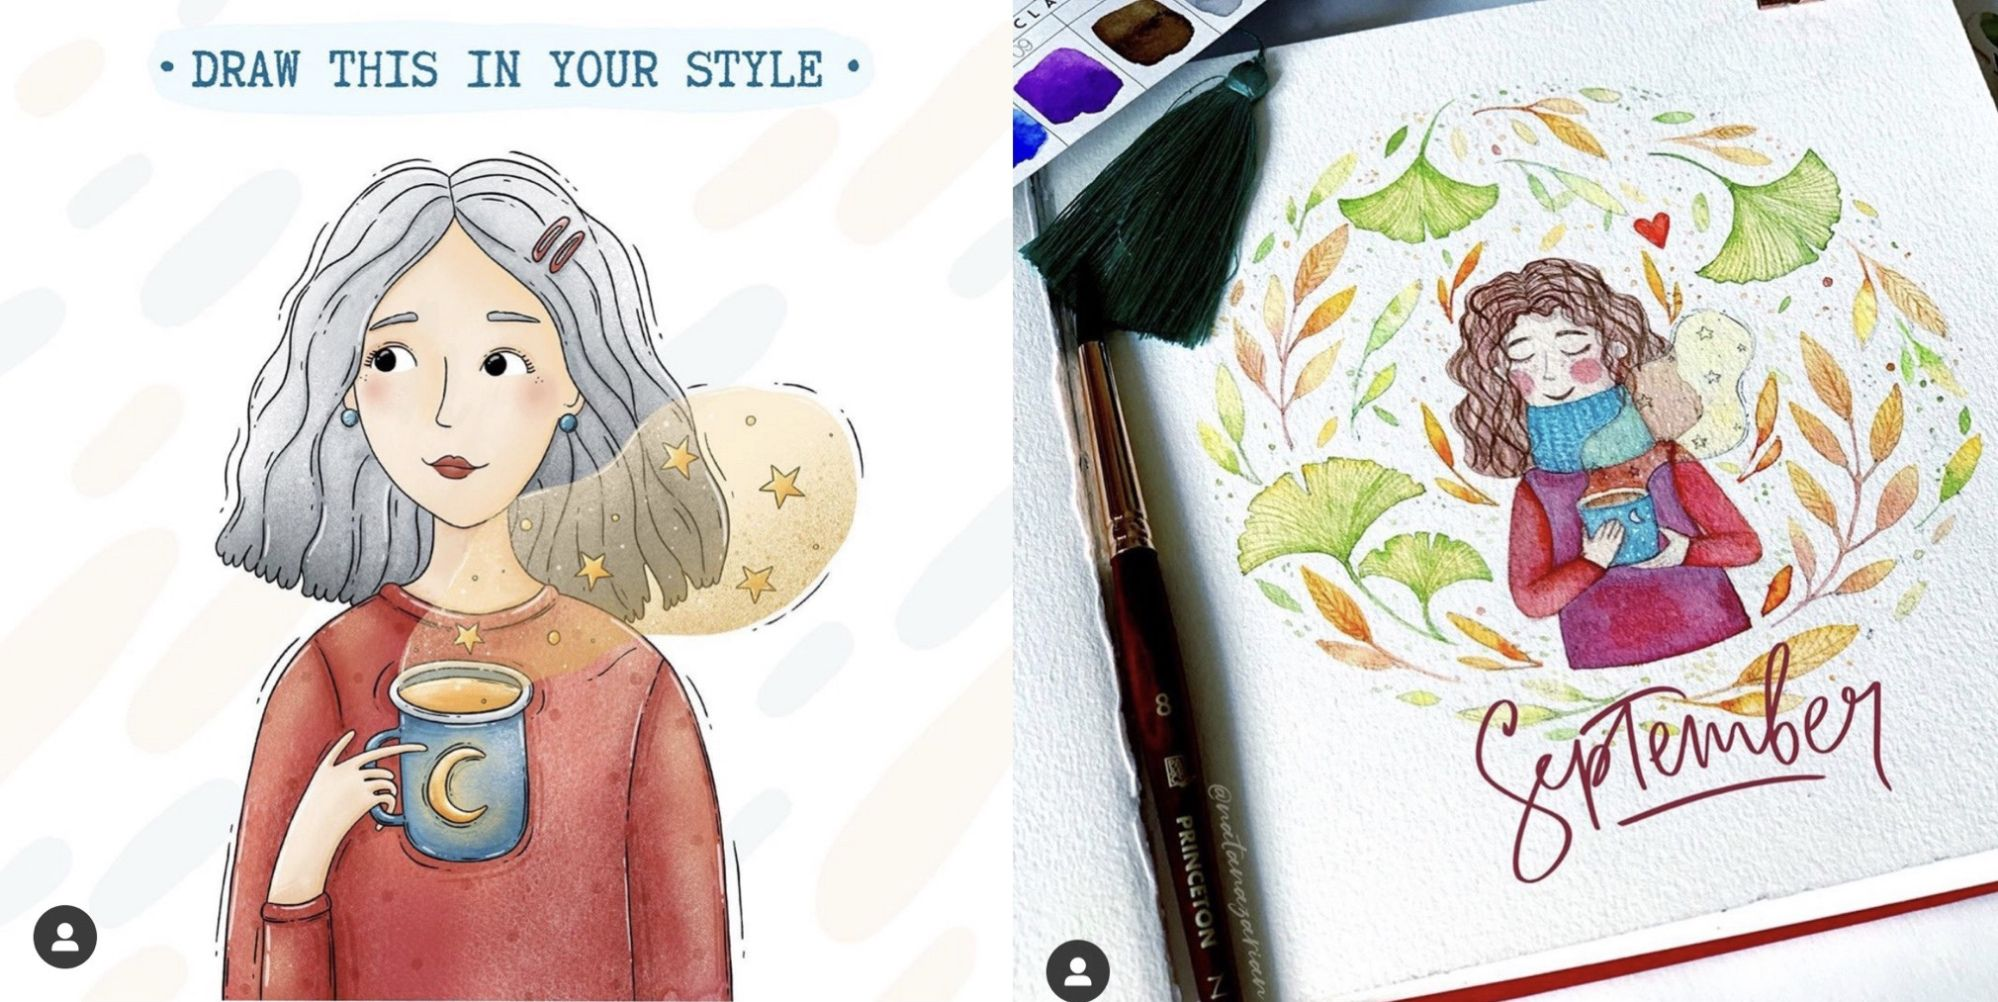 How To Find Your Own Style In 2020 Finding Yourself Style Your Style